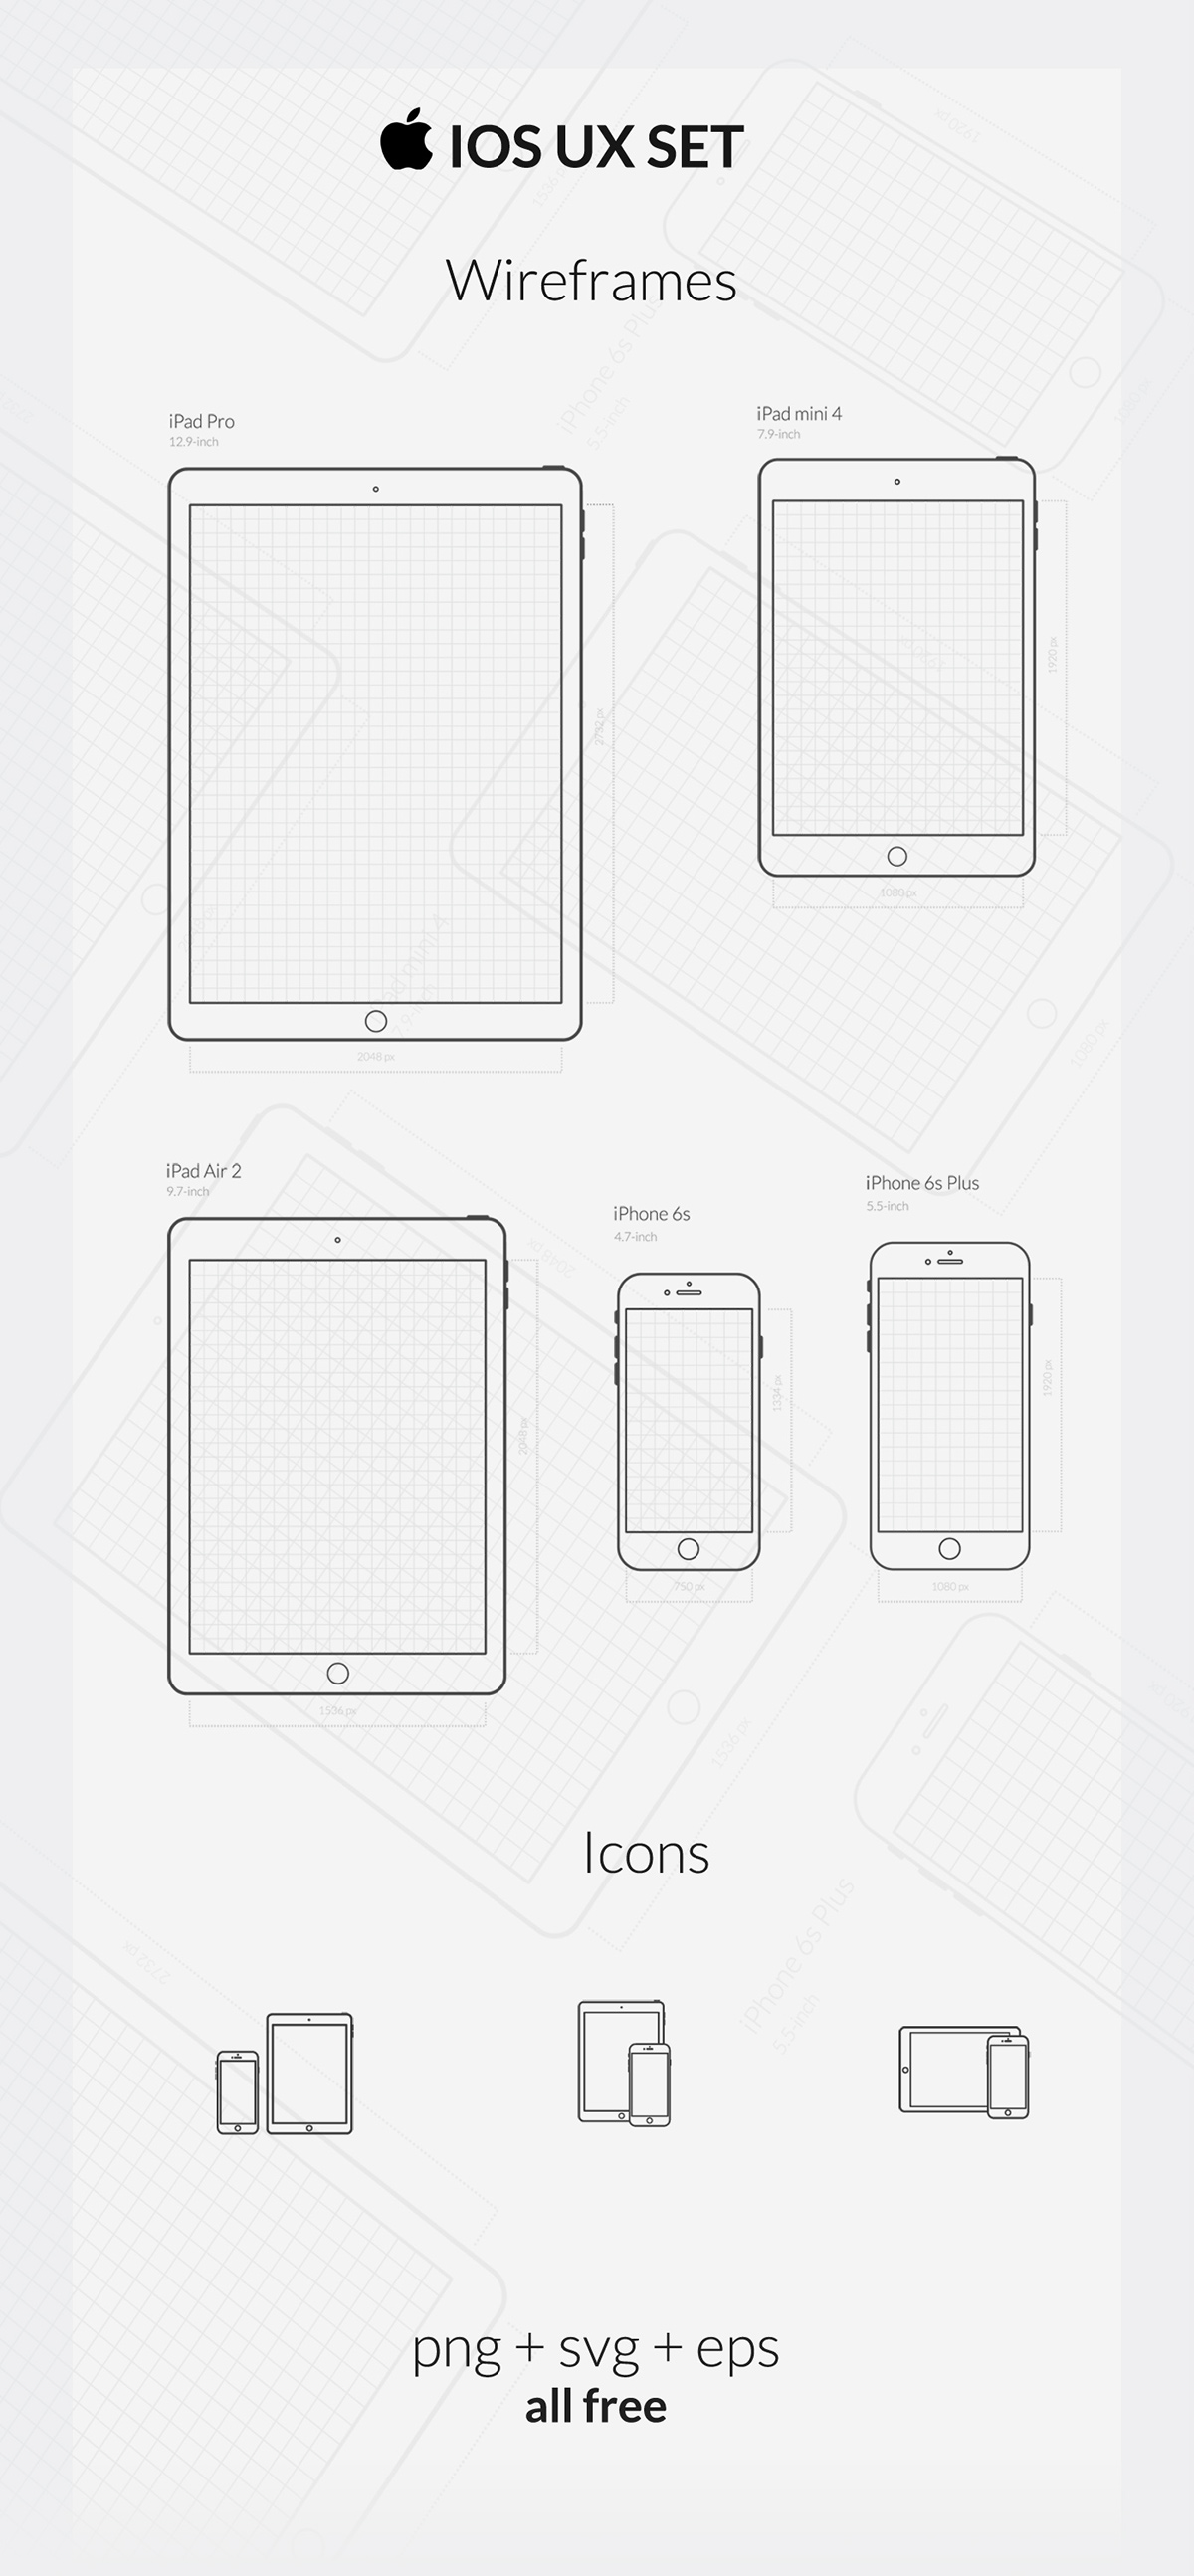 Free Ios Ux Set Wireframes Amp Icons On Behance